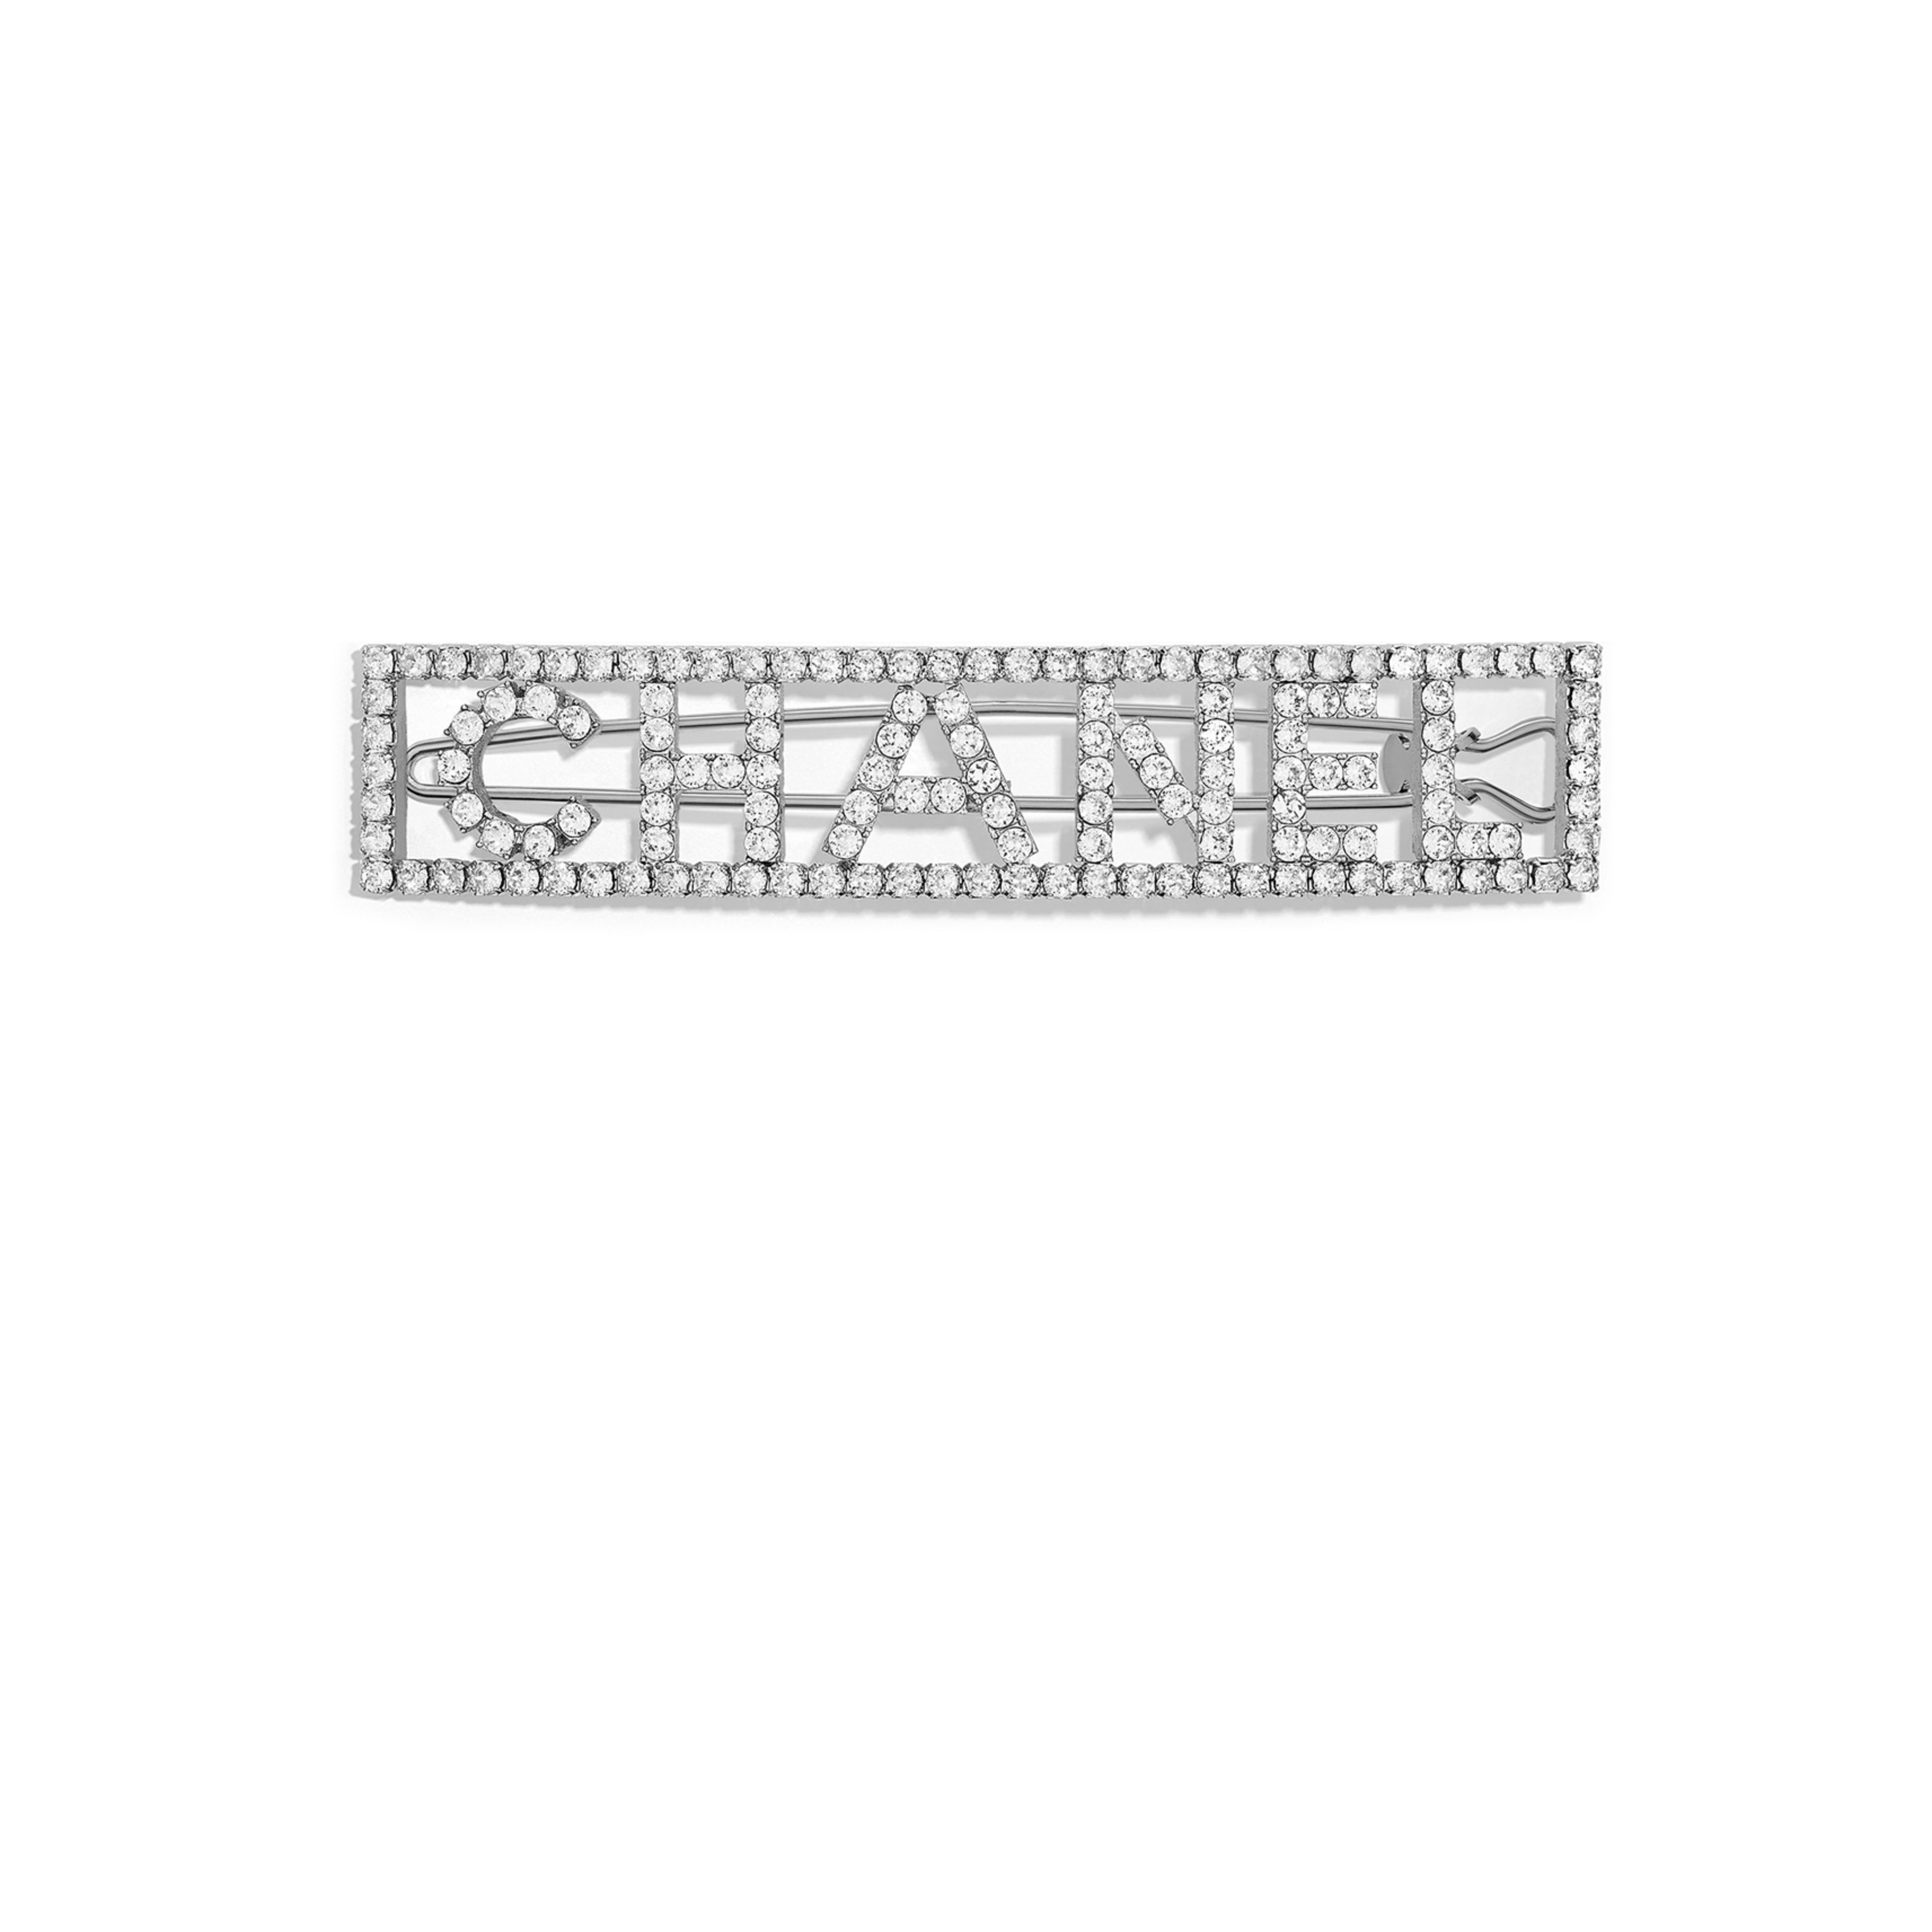 Hair Clip Metal & Strass Silver & Crystal -                                  view 1 - see full sized version